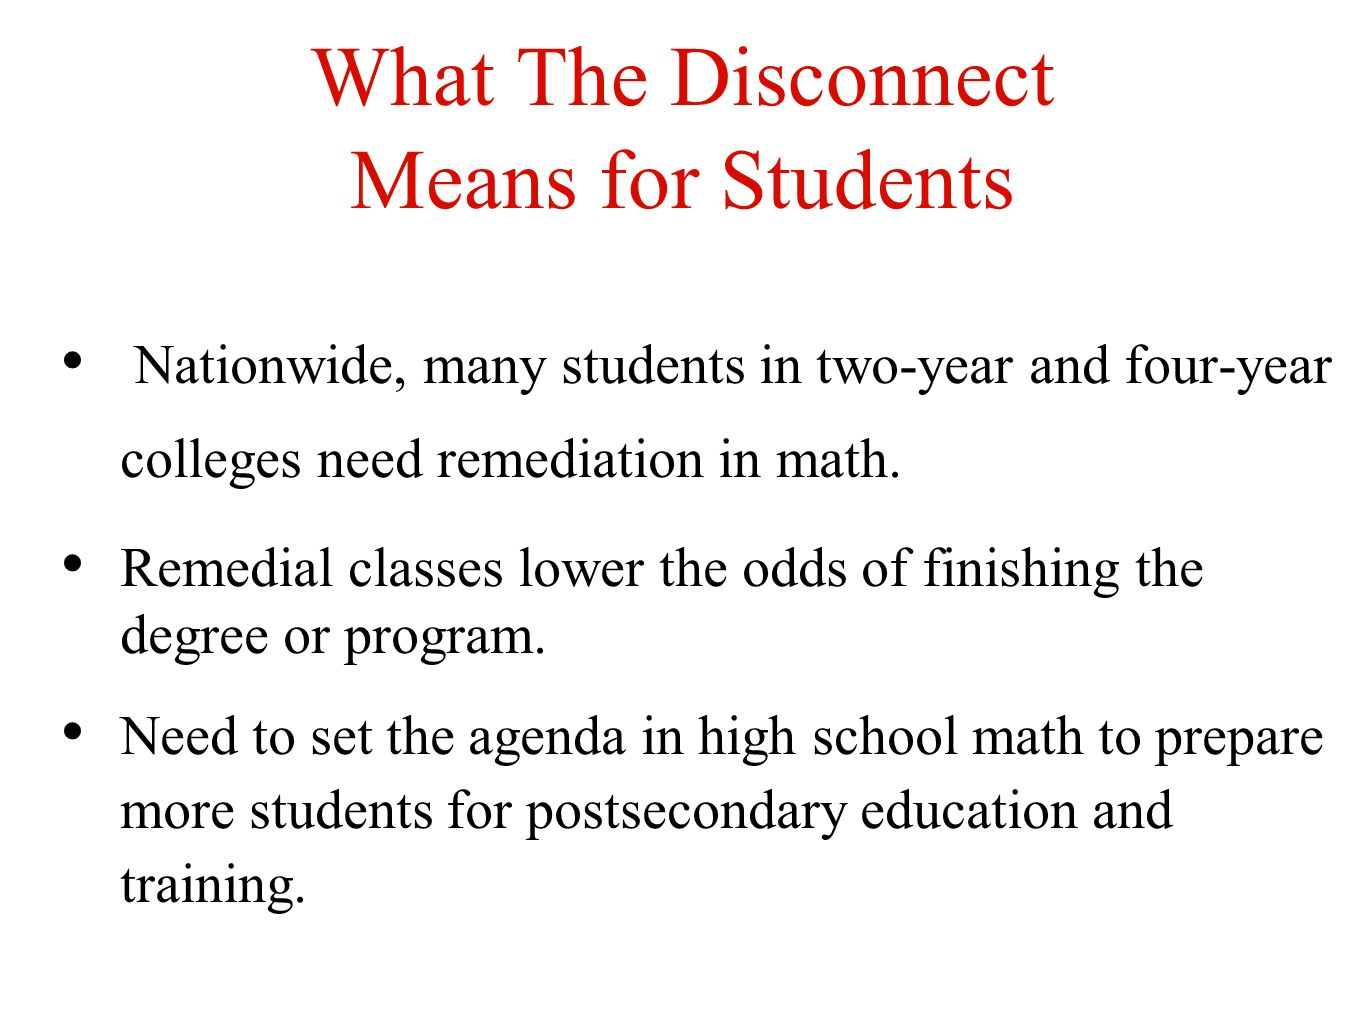 What The Disconnect Means for Students